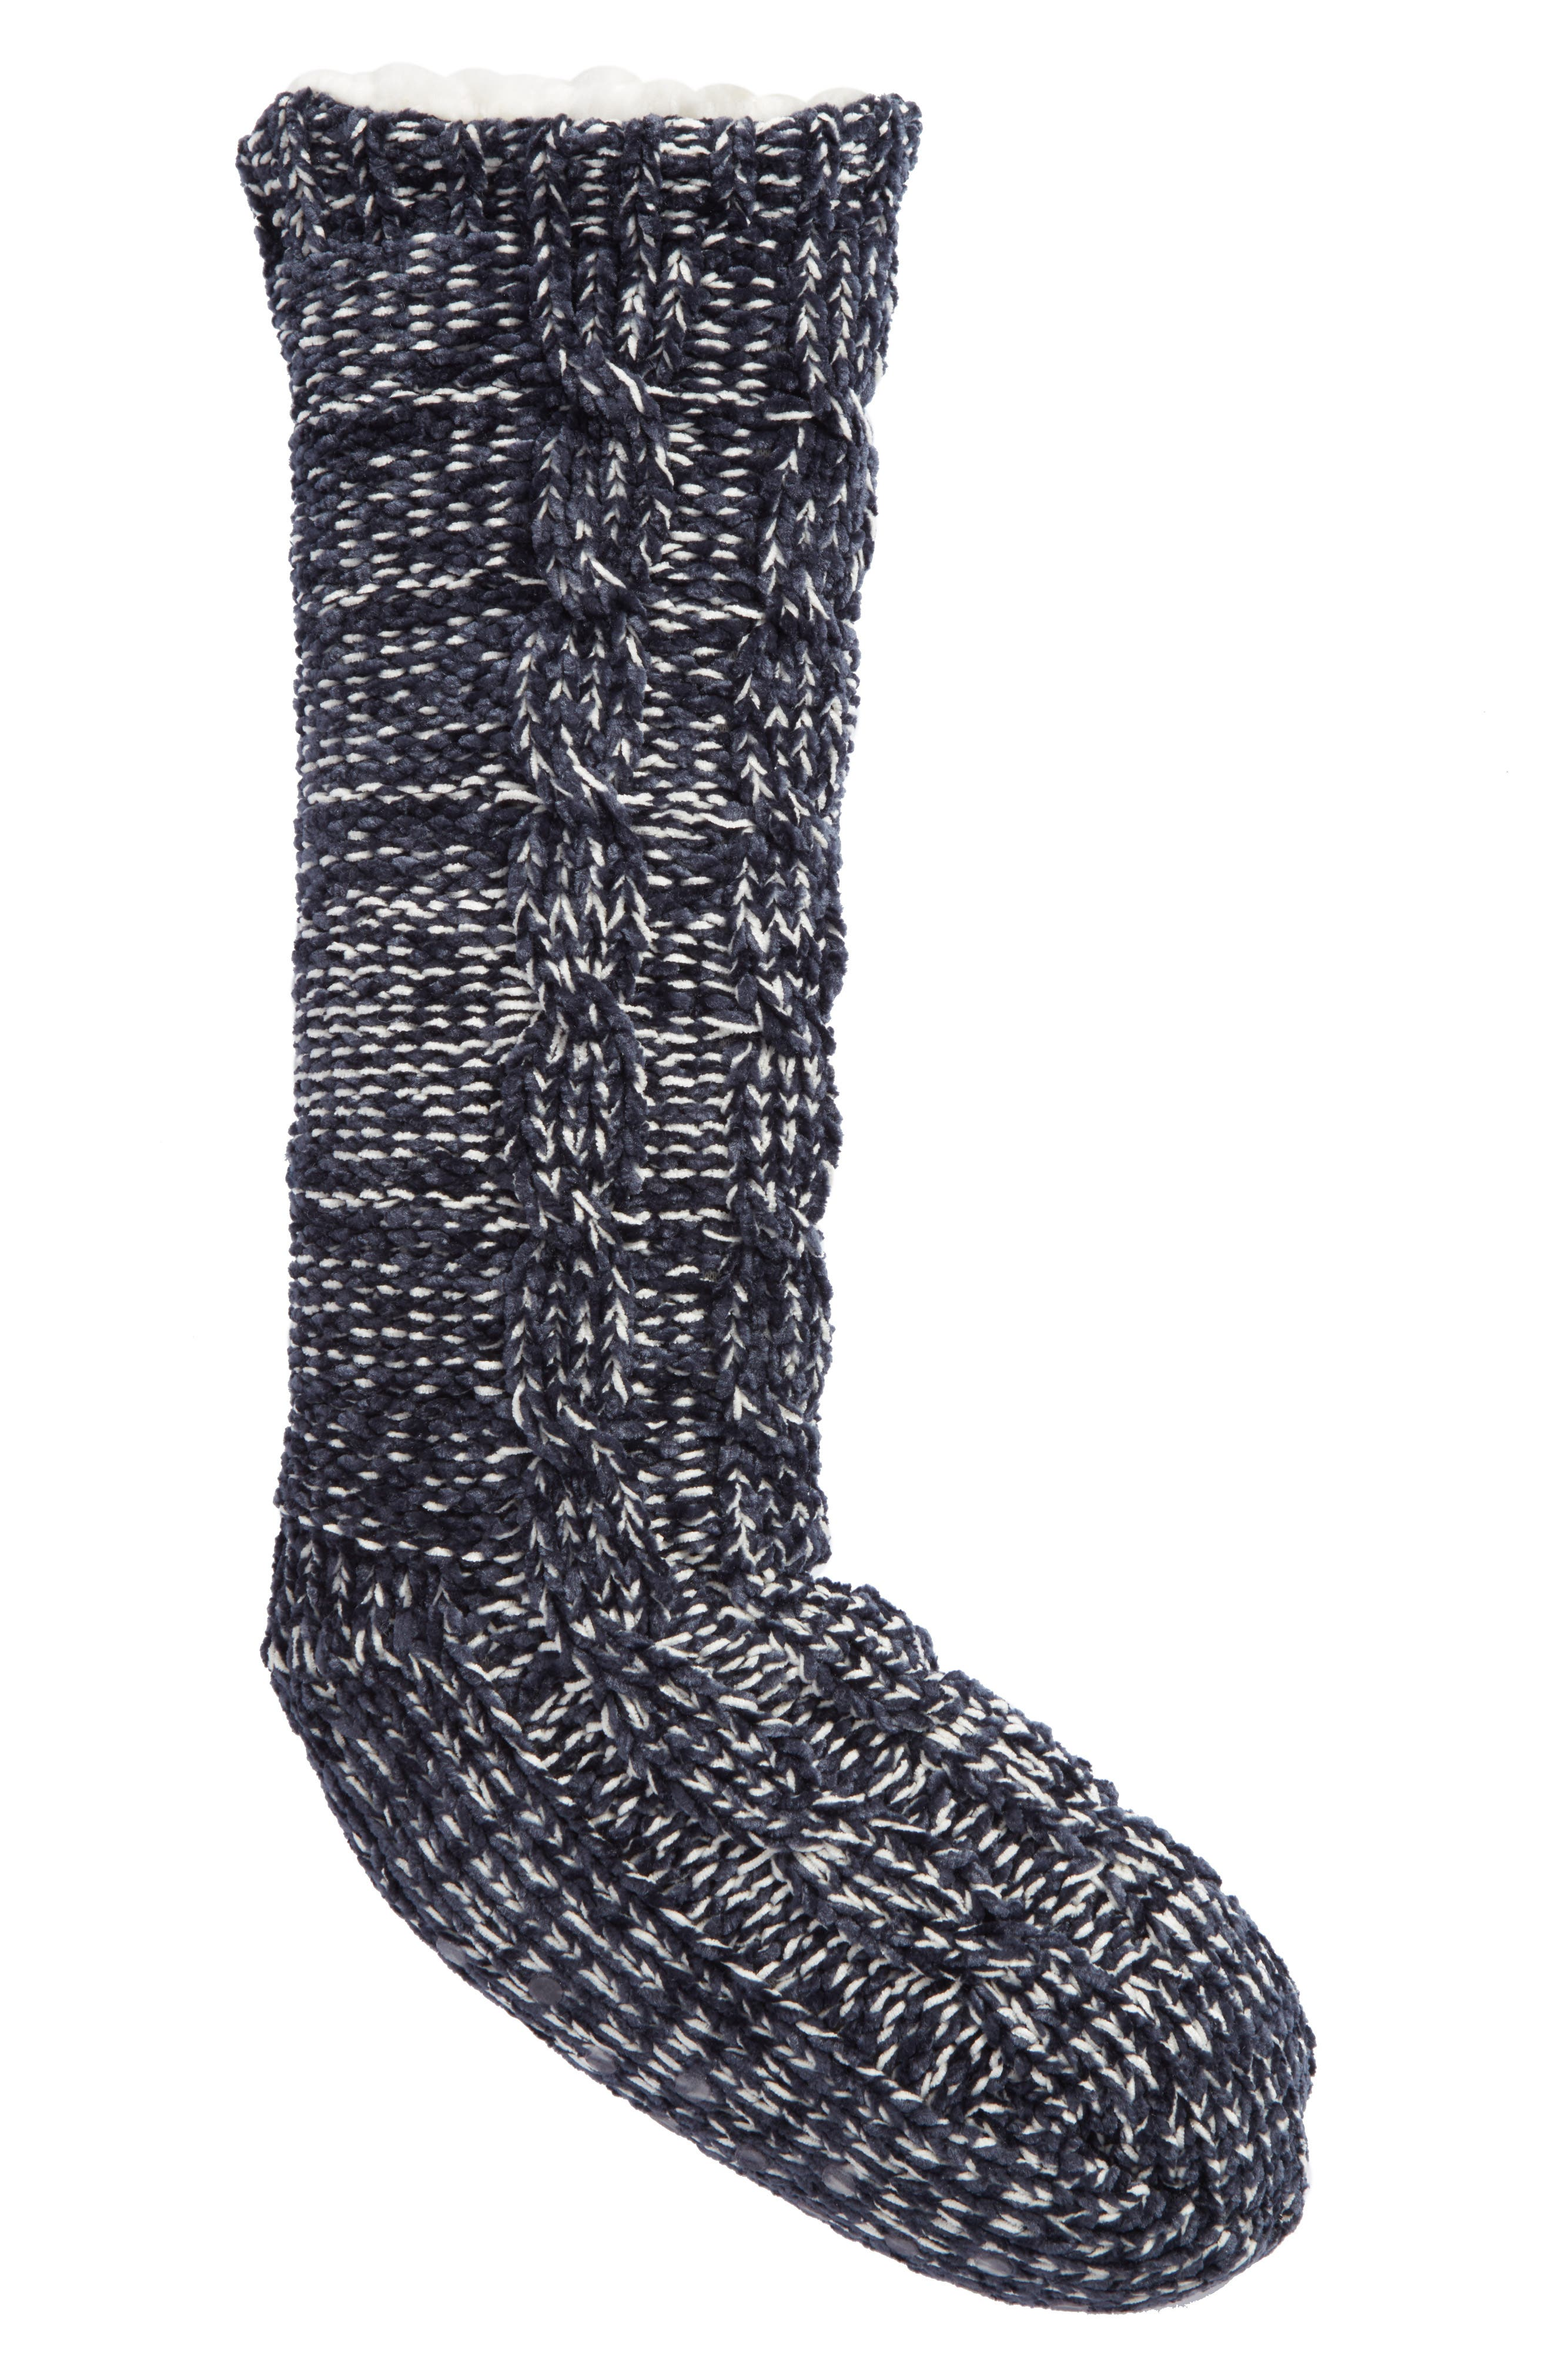 Cable Knit Slipper Socks,                         Main,                         color,